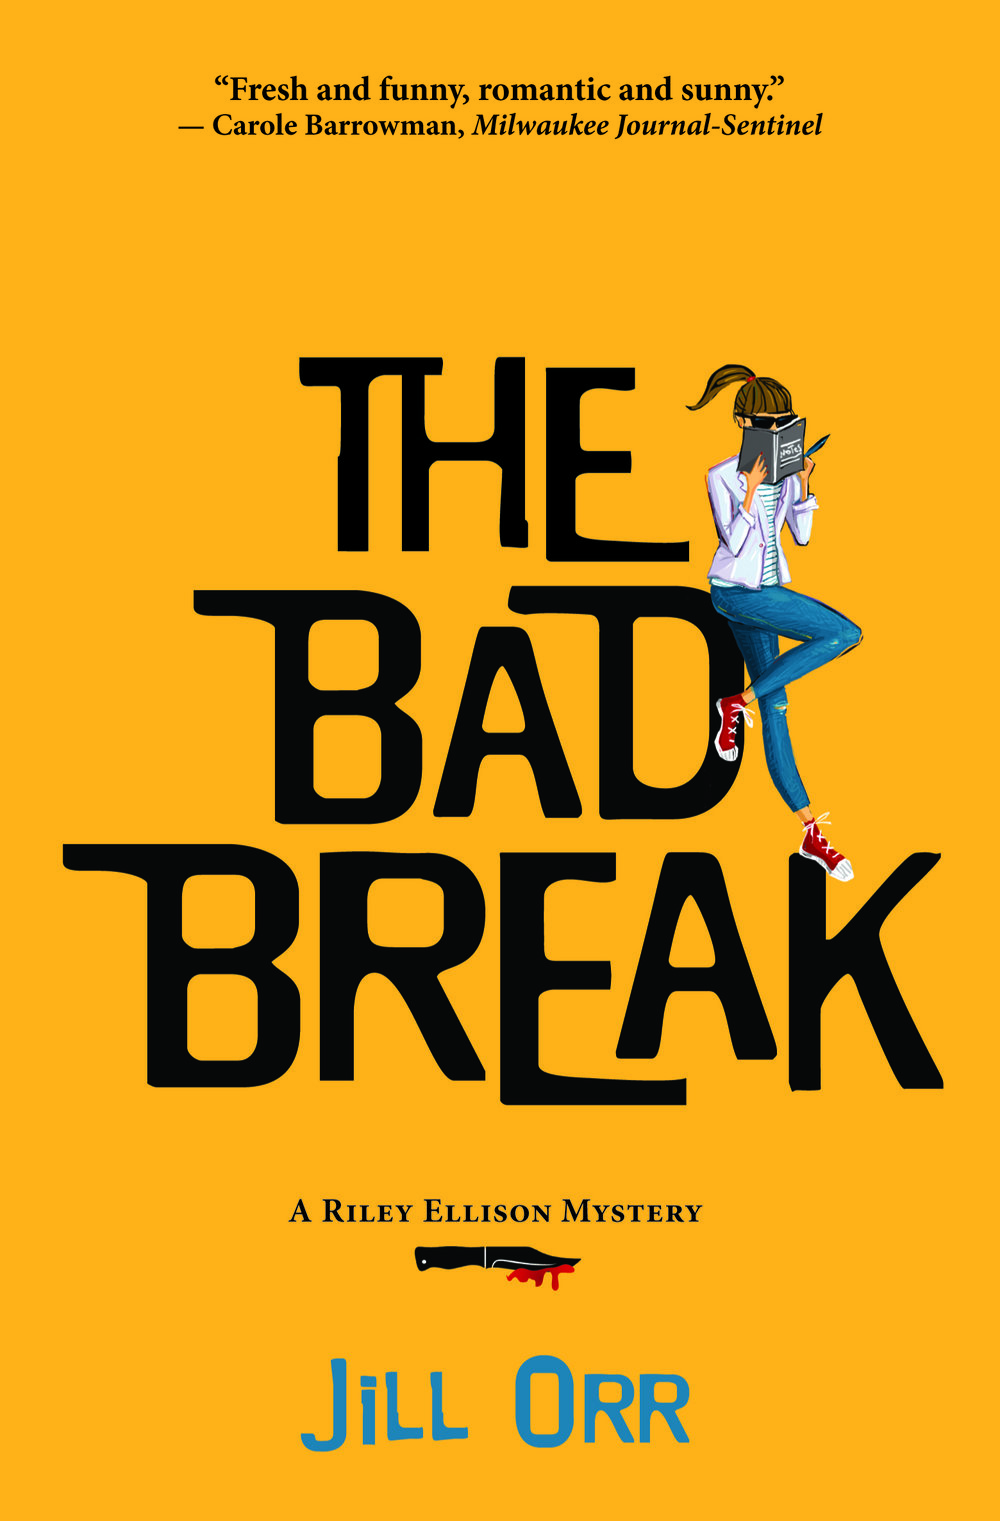 Bad Break cover.jpg